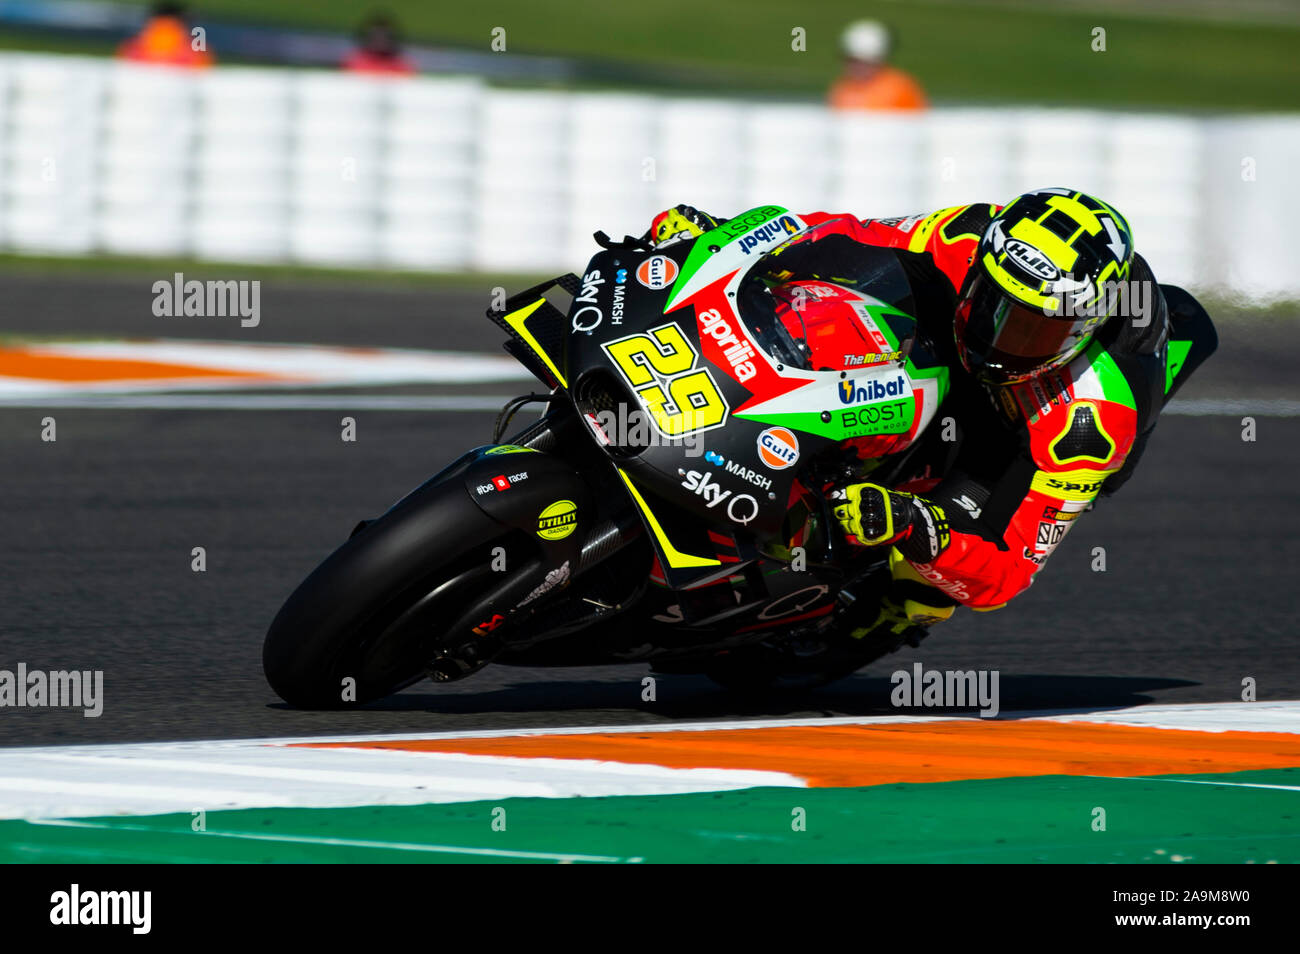 Page 3 Iannone High Resolution Stock Photography And Images Alamy